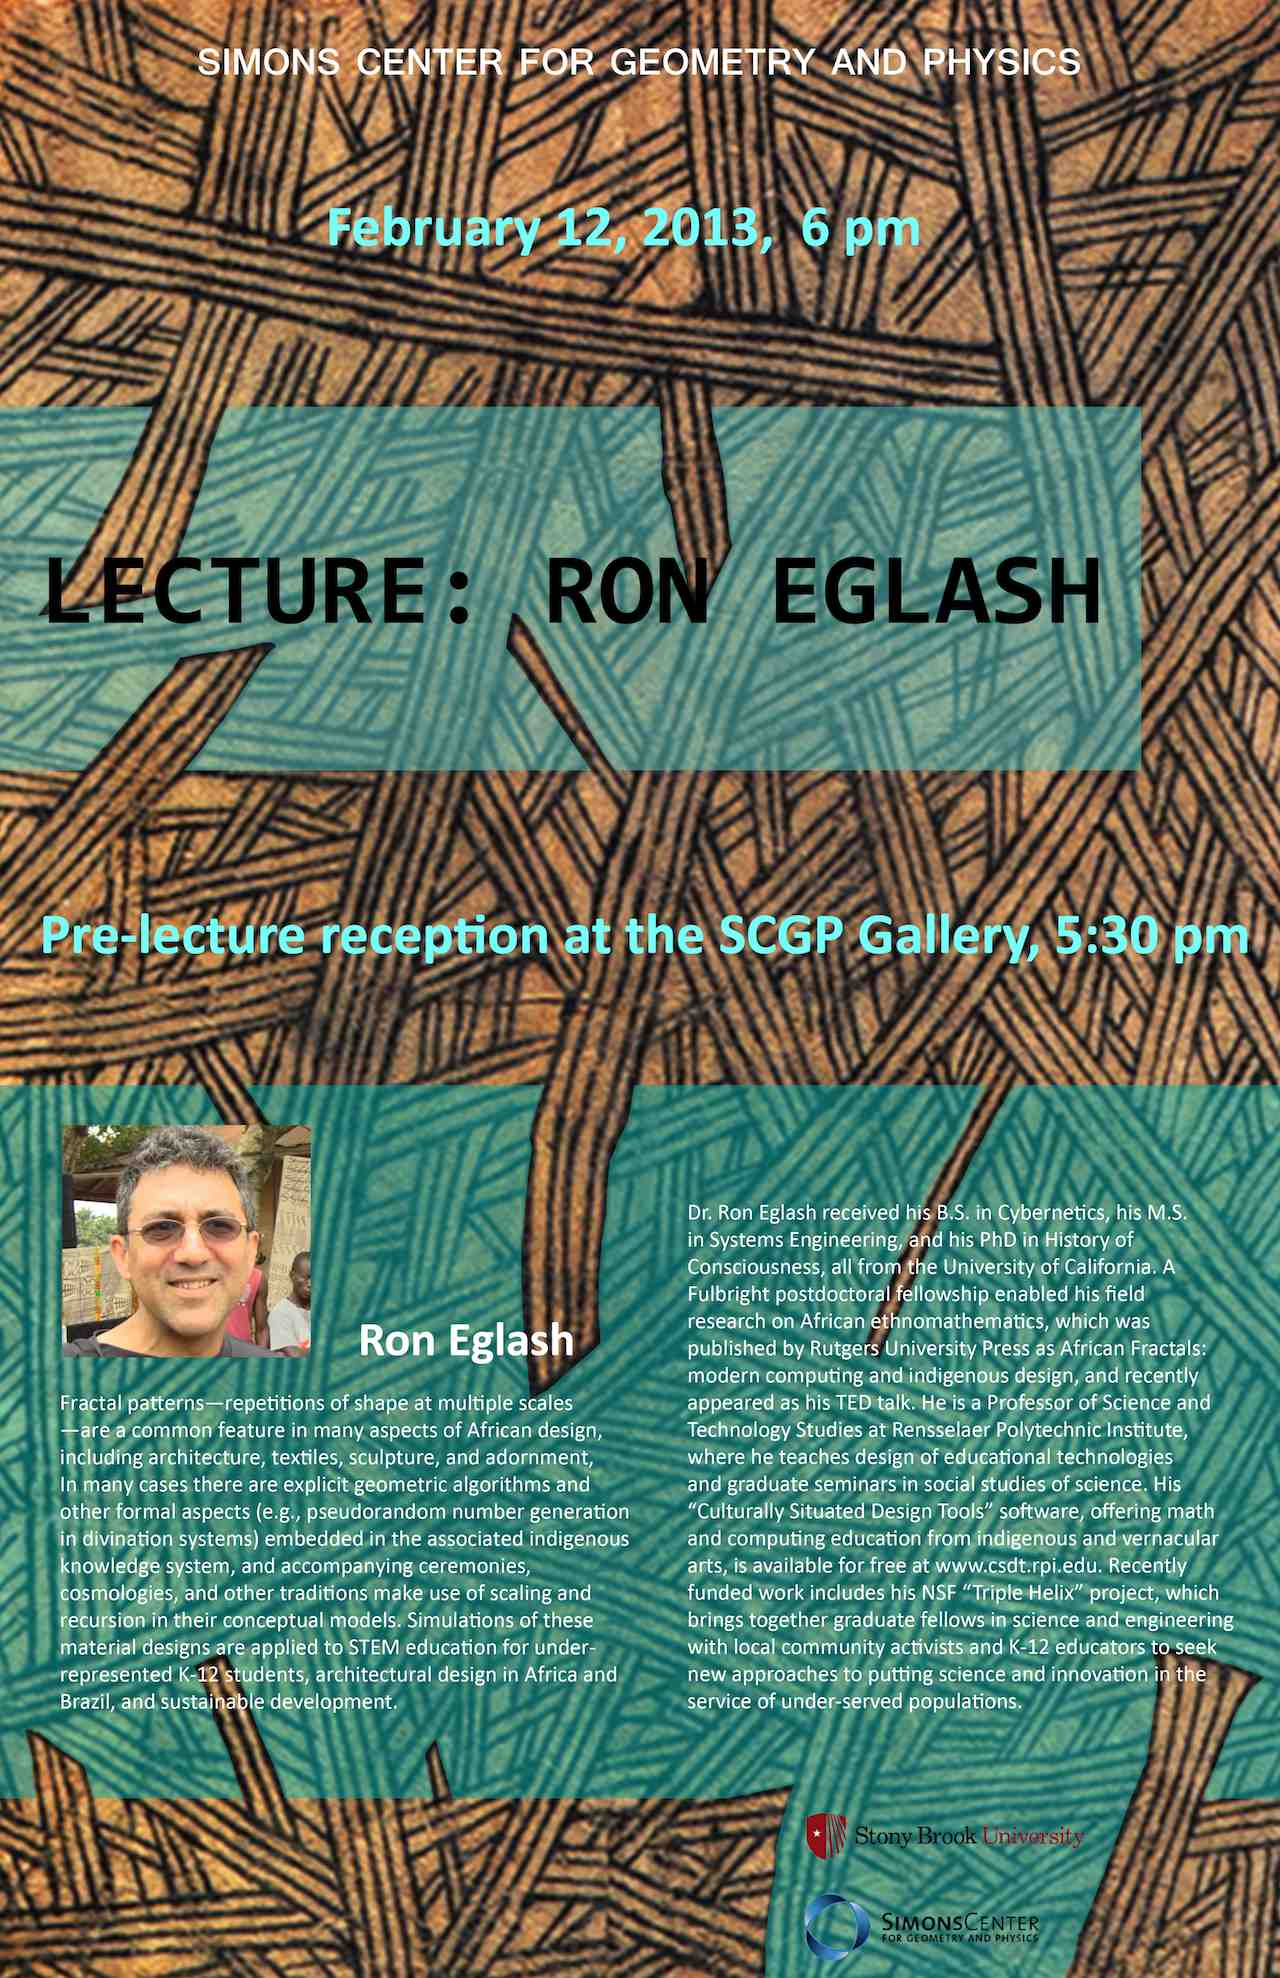 10-20130212-nd-ron-eglash-poster-web